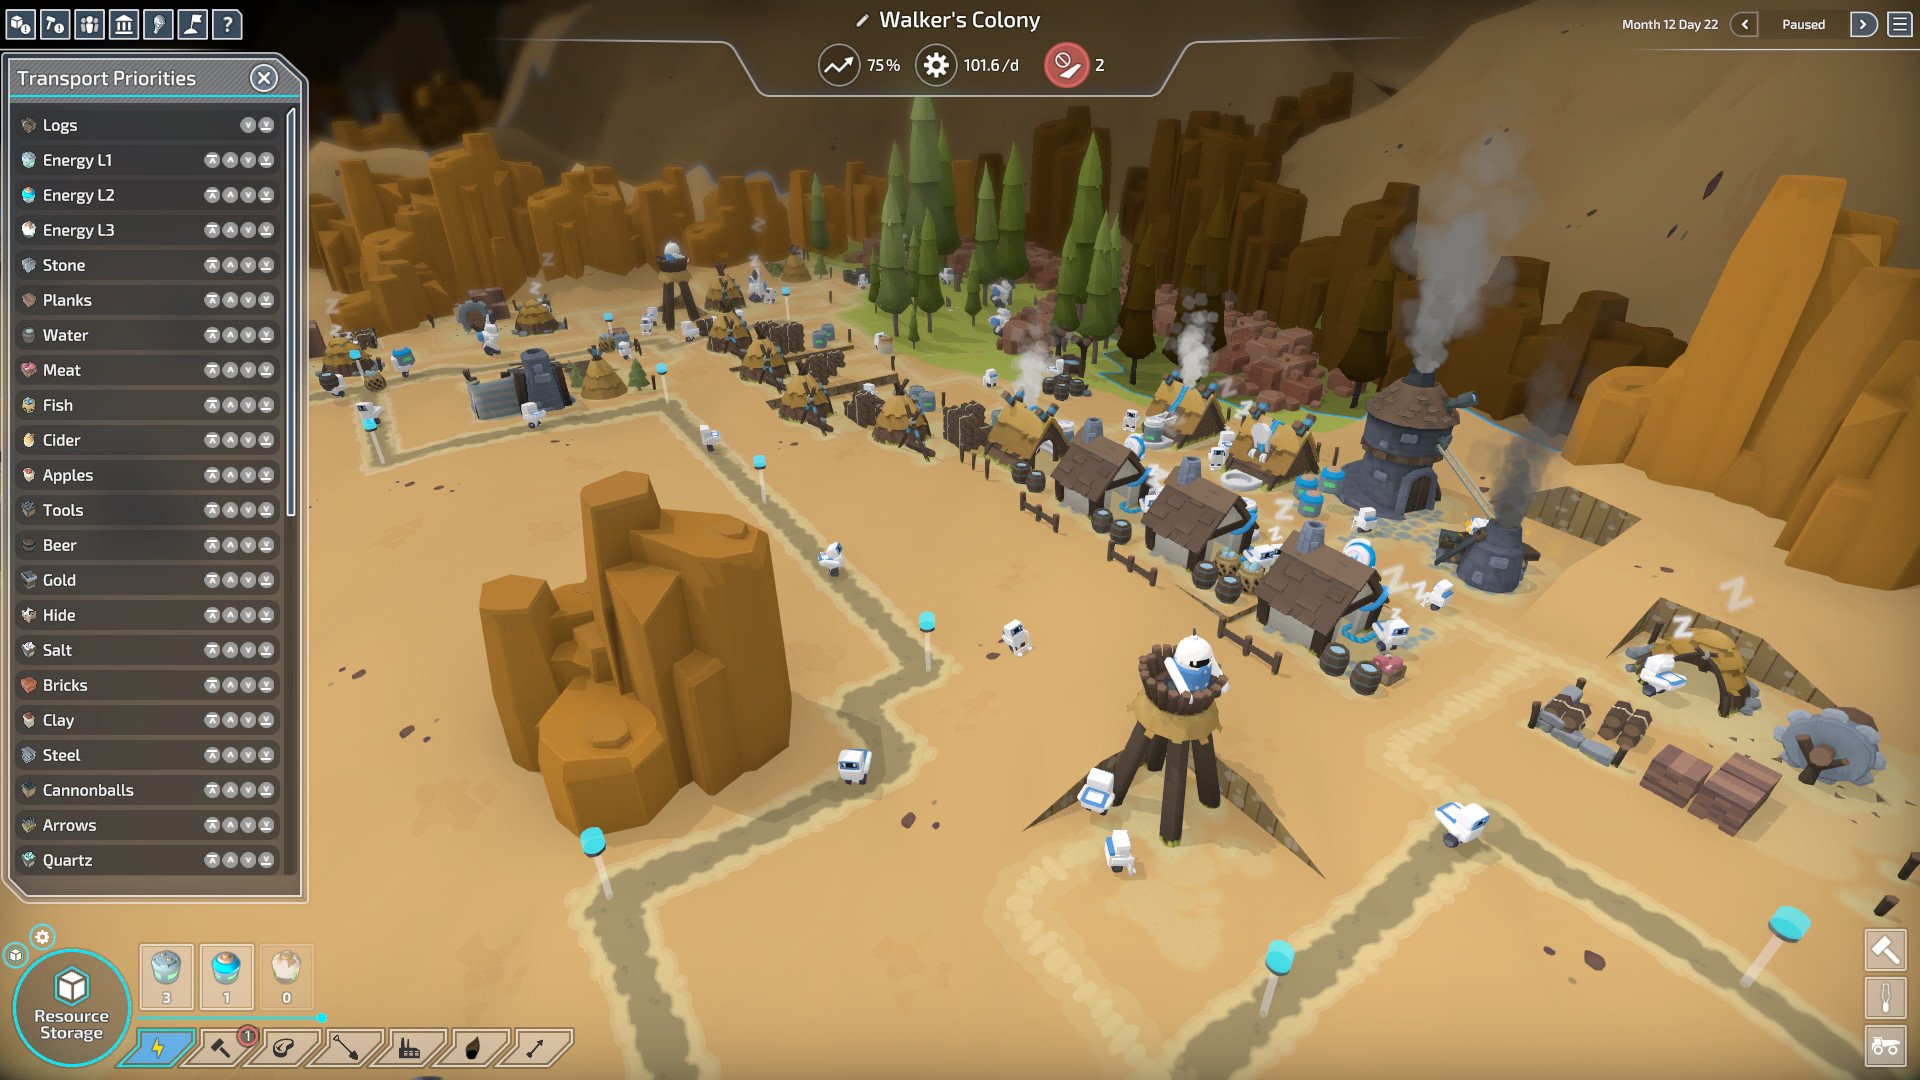 Screenshot for the game The Colonists v.1.5.10.1  [GOG]